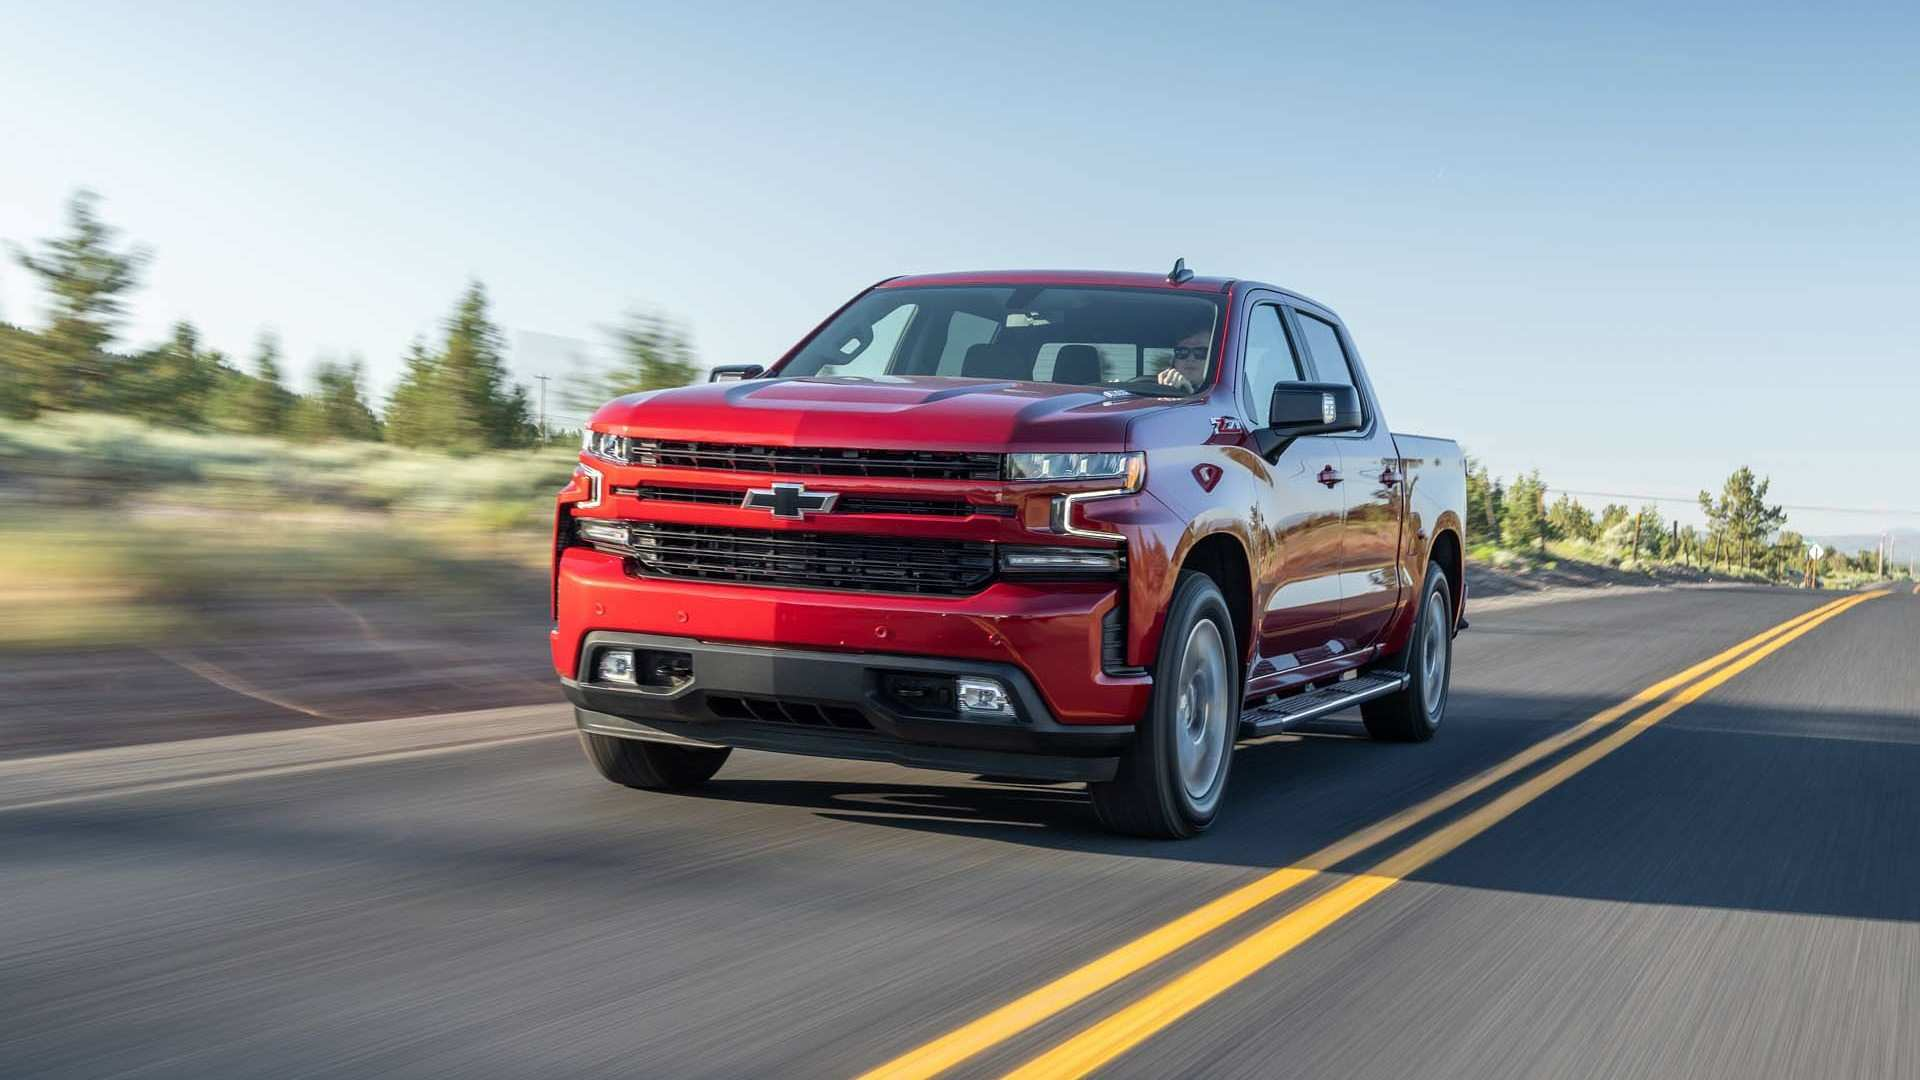 64 The Best Chevrolet Diesel 2020 Performance